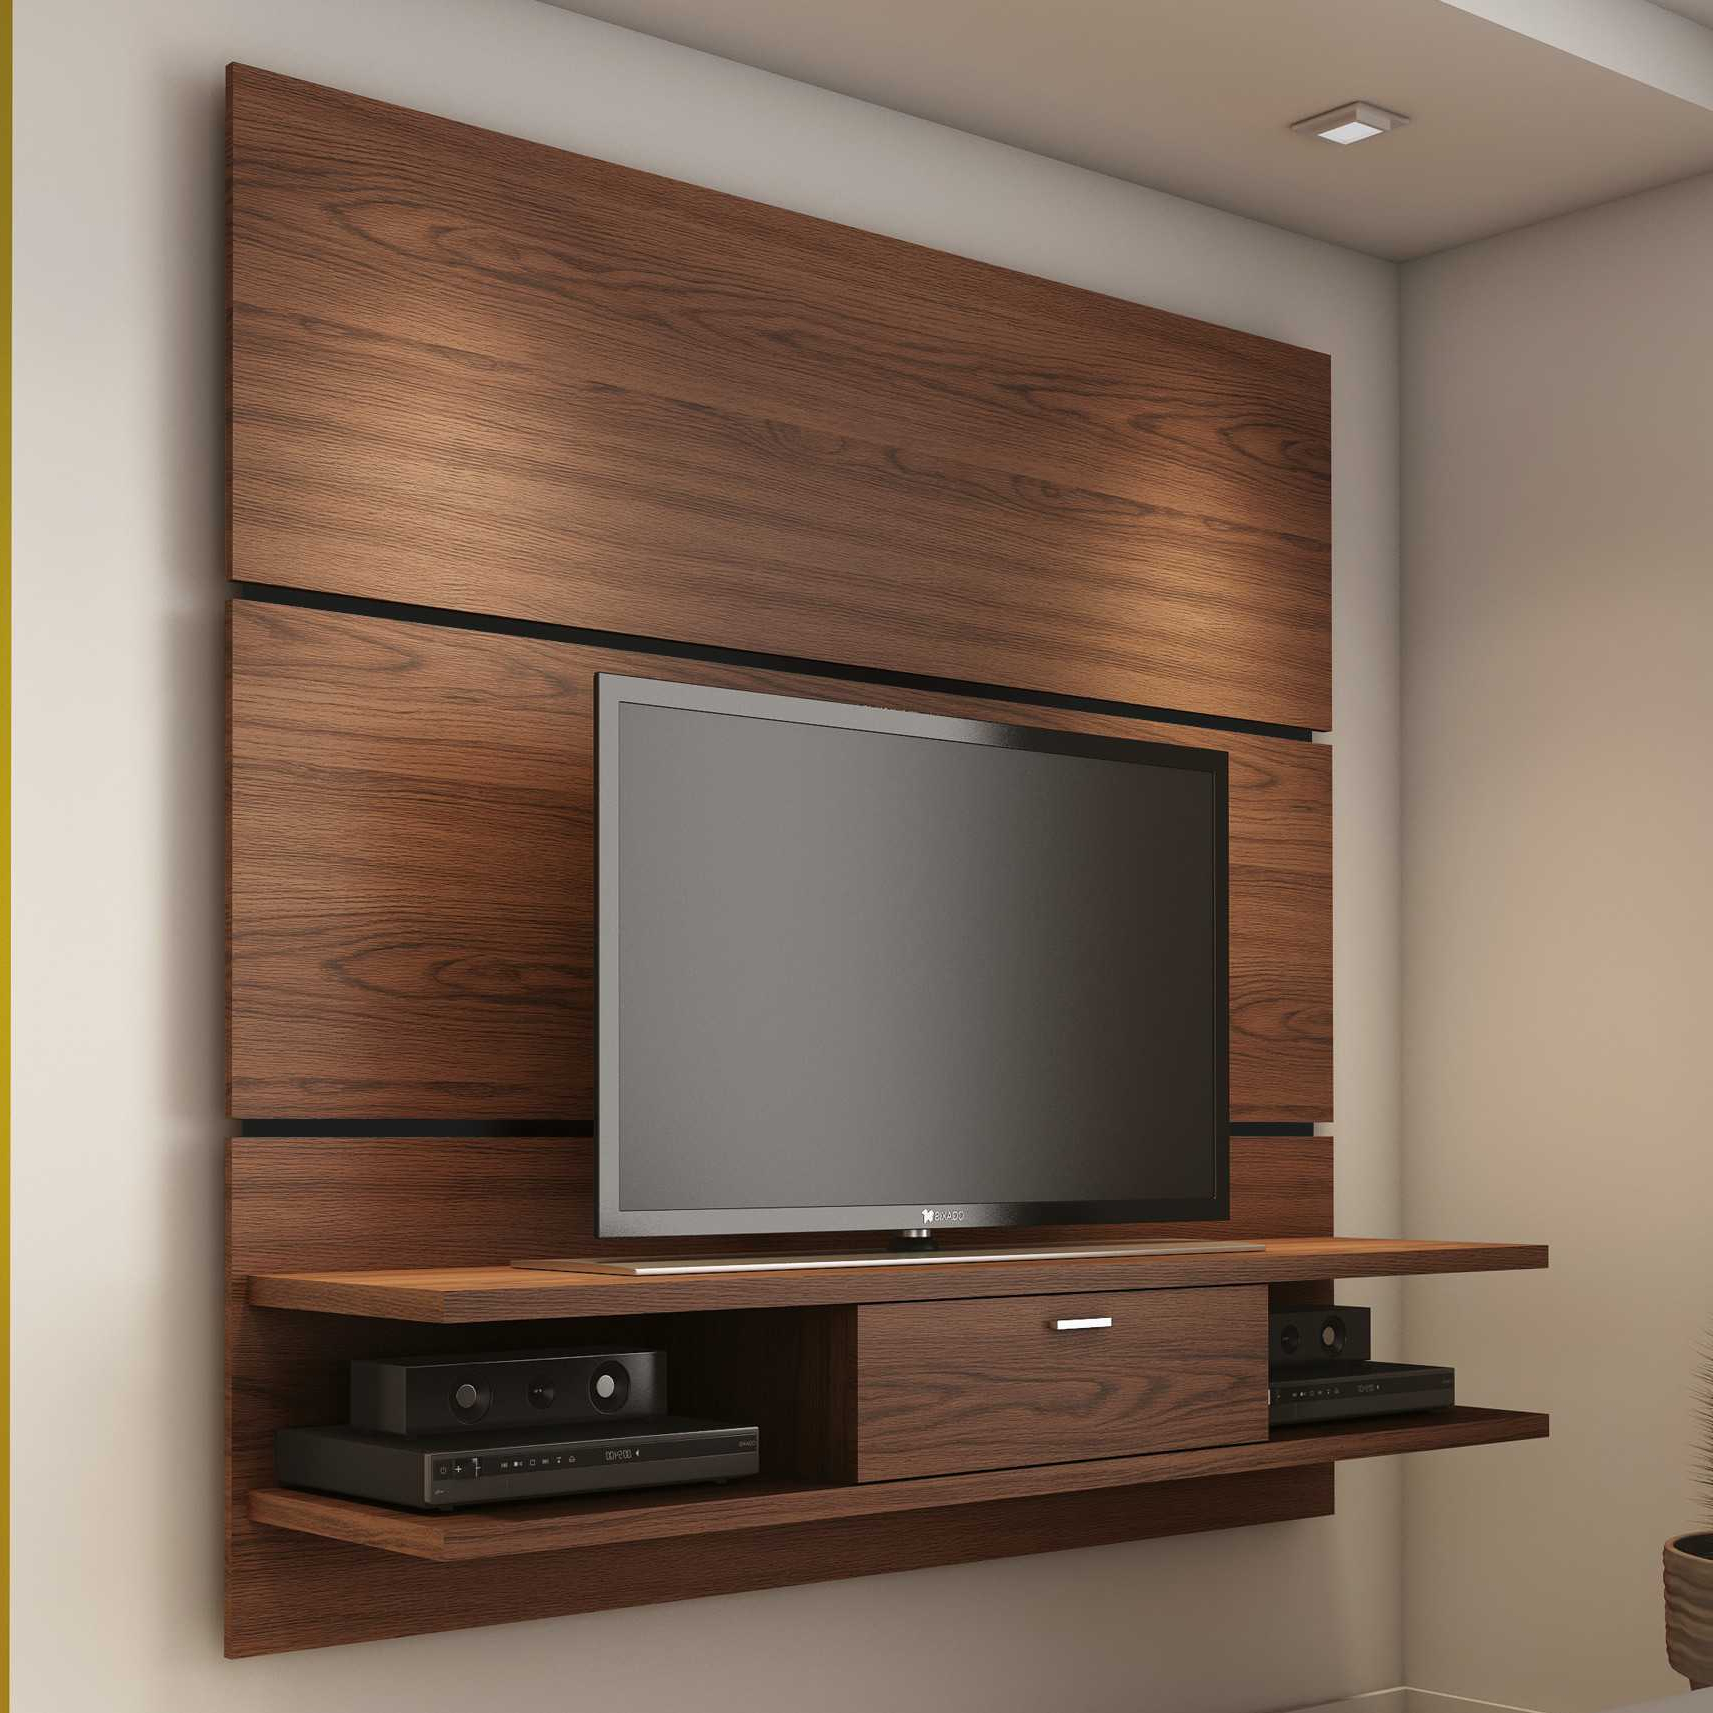 Latest Small Tv Cabinets – Image Cabinets And Shower Mandra Tavern With Small Tv Cabinets (View 6 of 20)